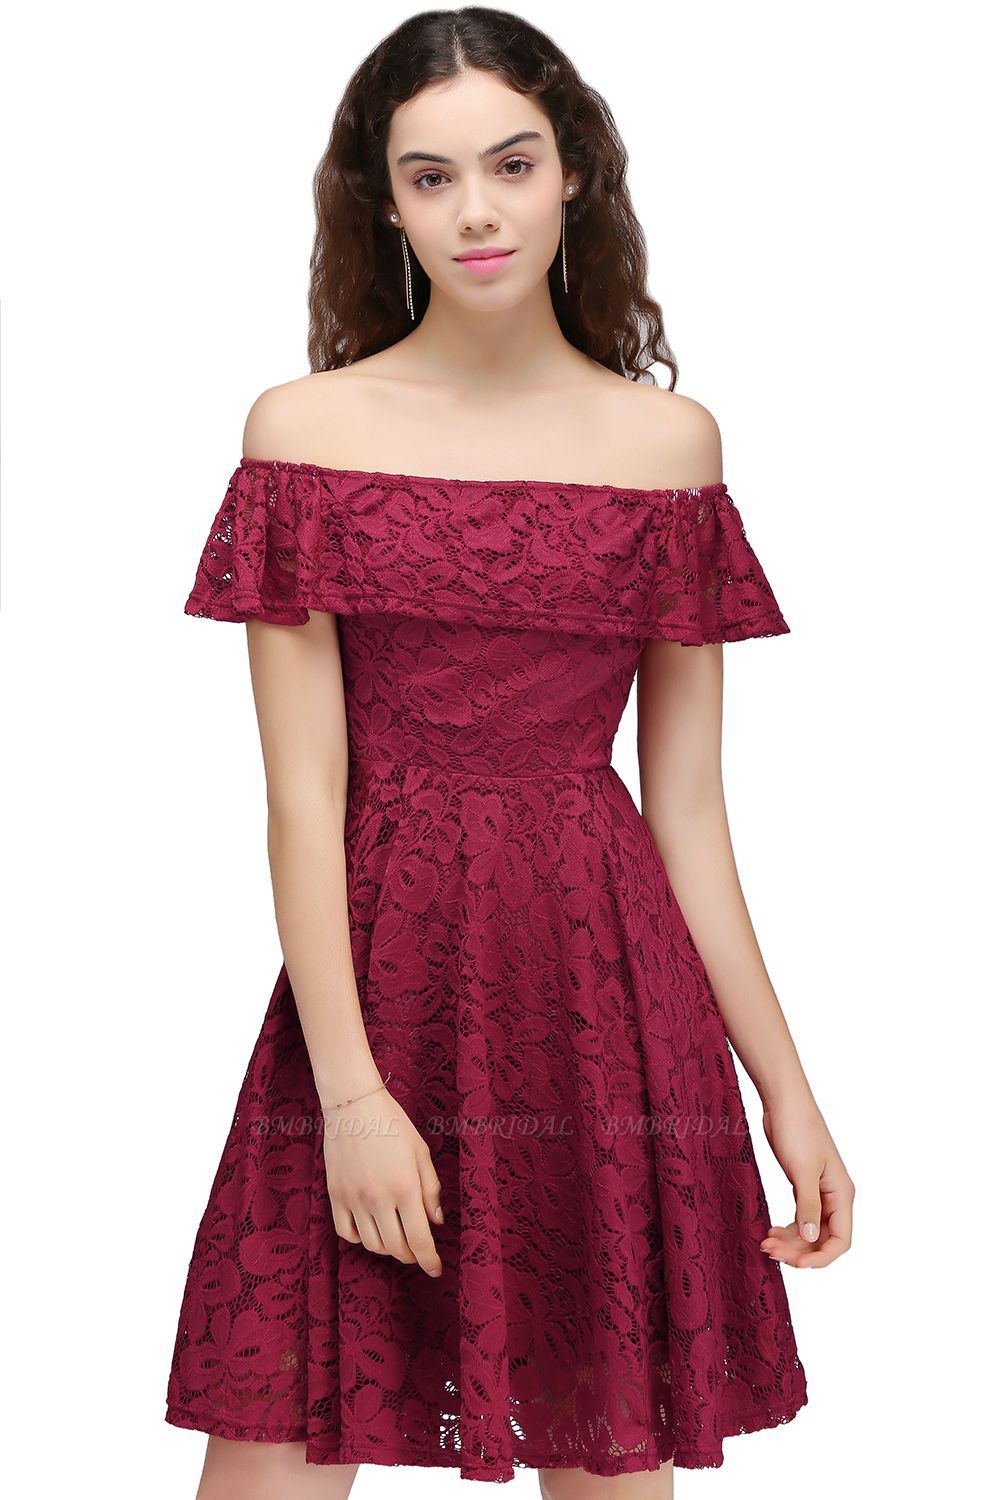 BMbridal A-Line Off-the-shoulder Lace Burgundy Homecoming Dress